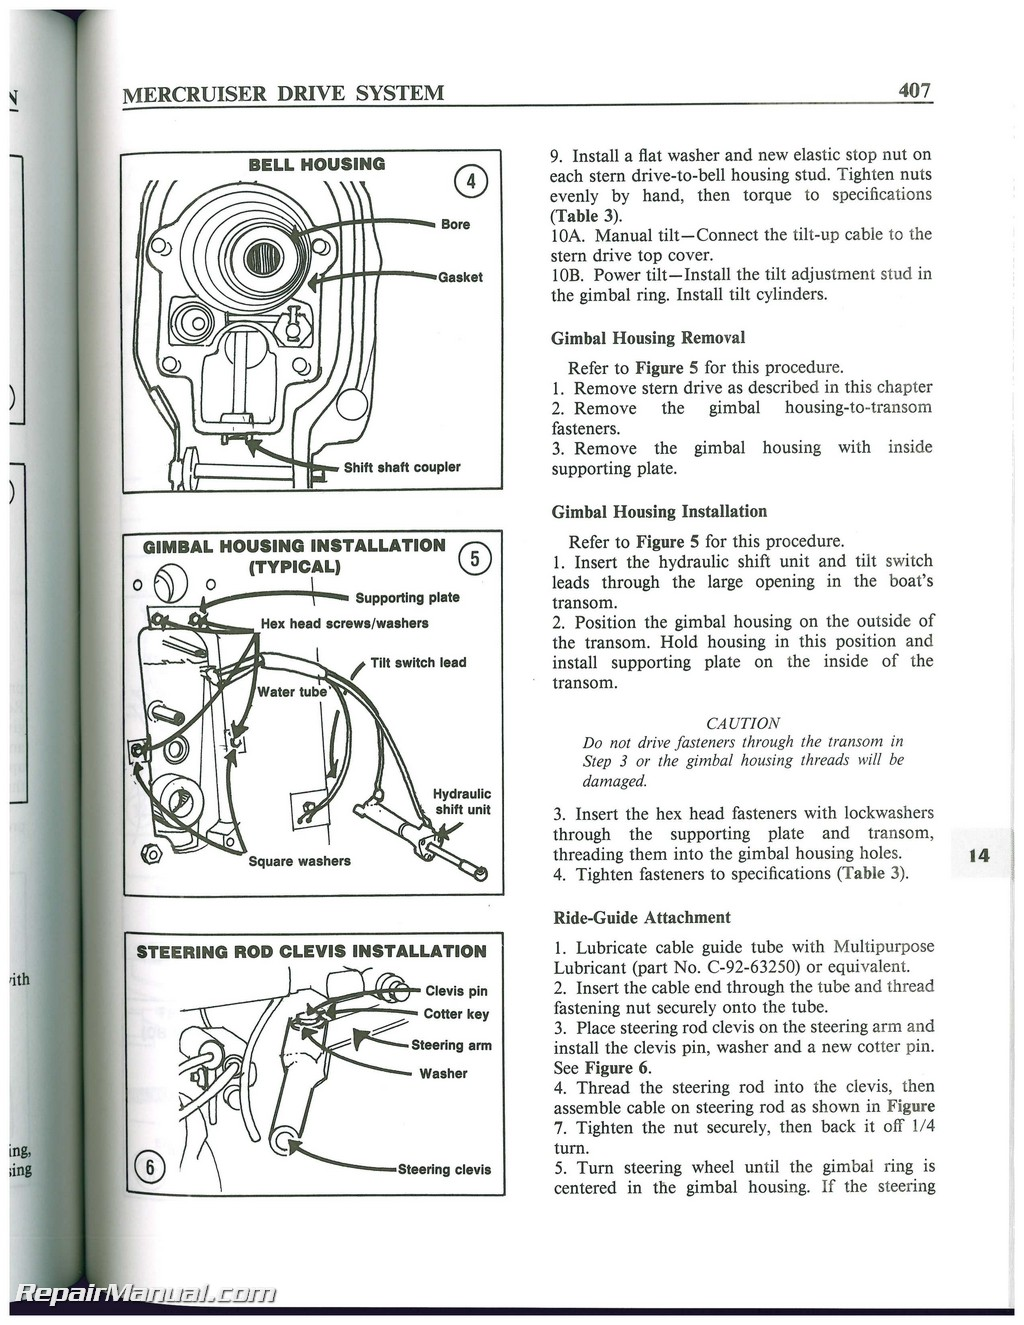 Mercruiser Stern Drive Boat Engine Shop Manual 1964 1987 Station Wiring Diagram For Two